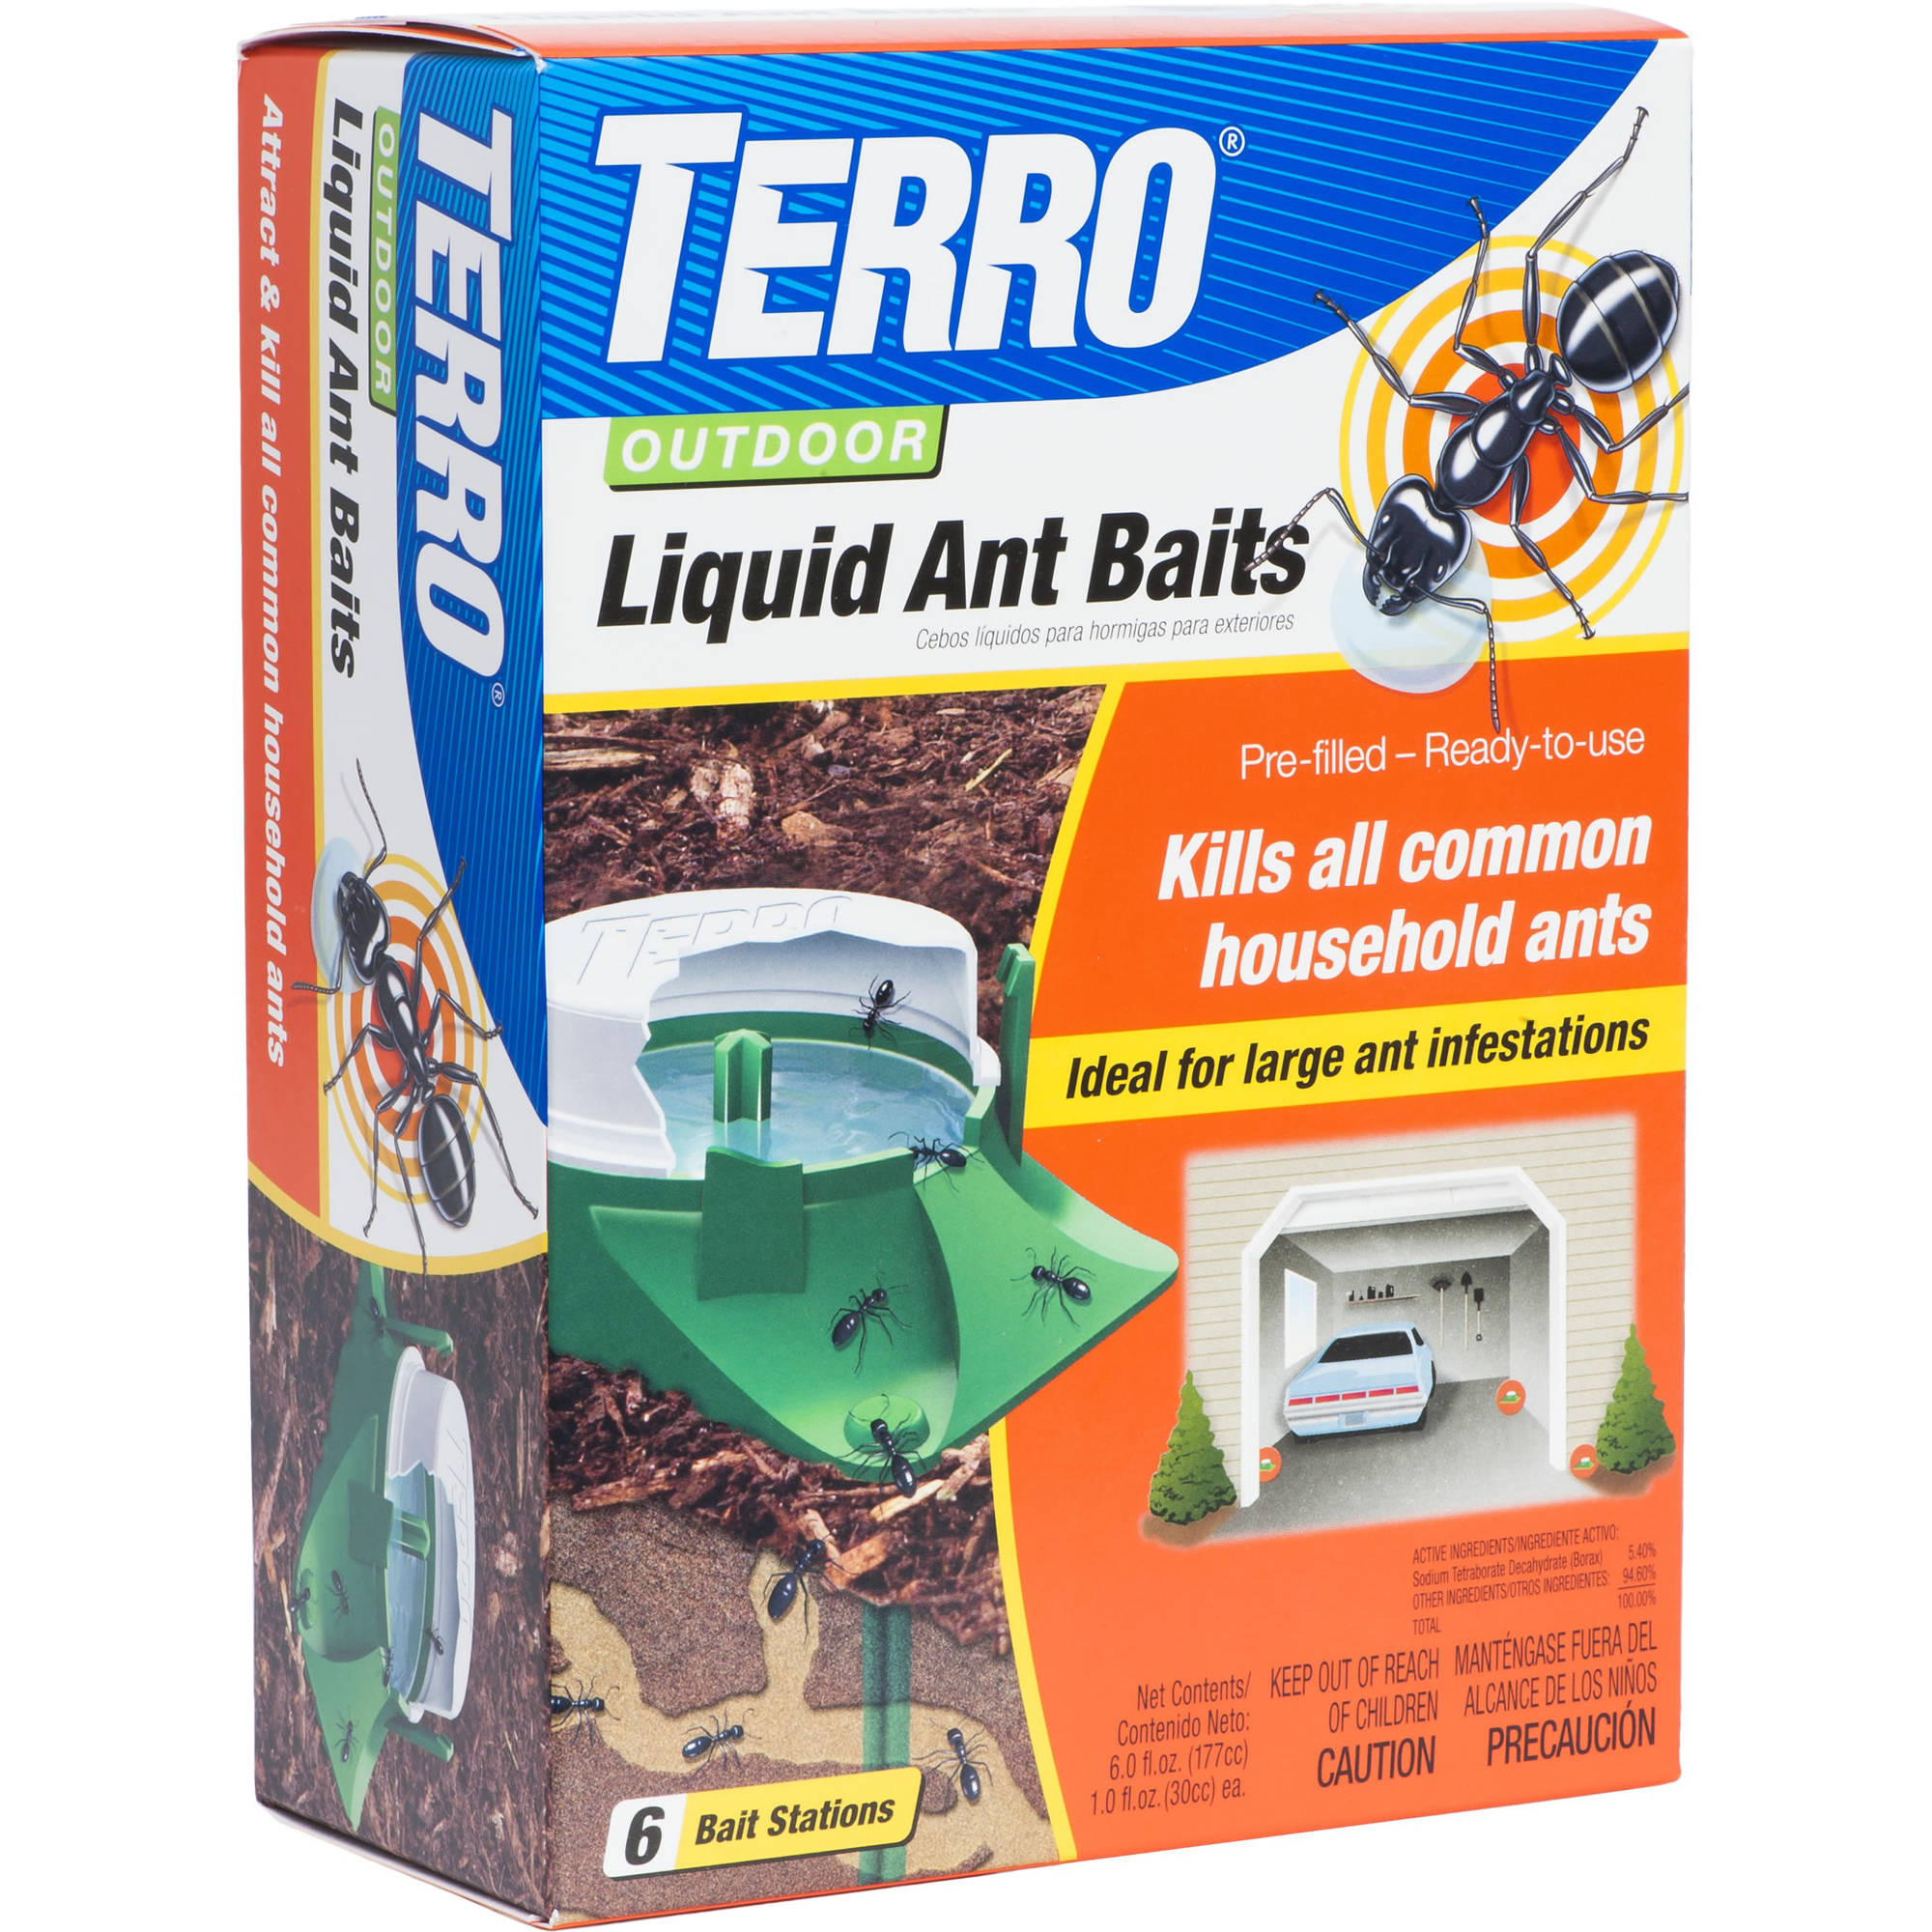 TERRO 6-Pack Outdoor Liquid Ant Baits